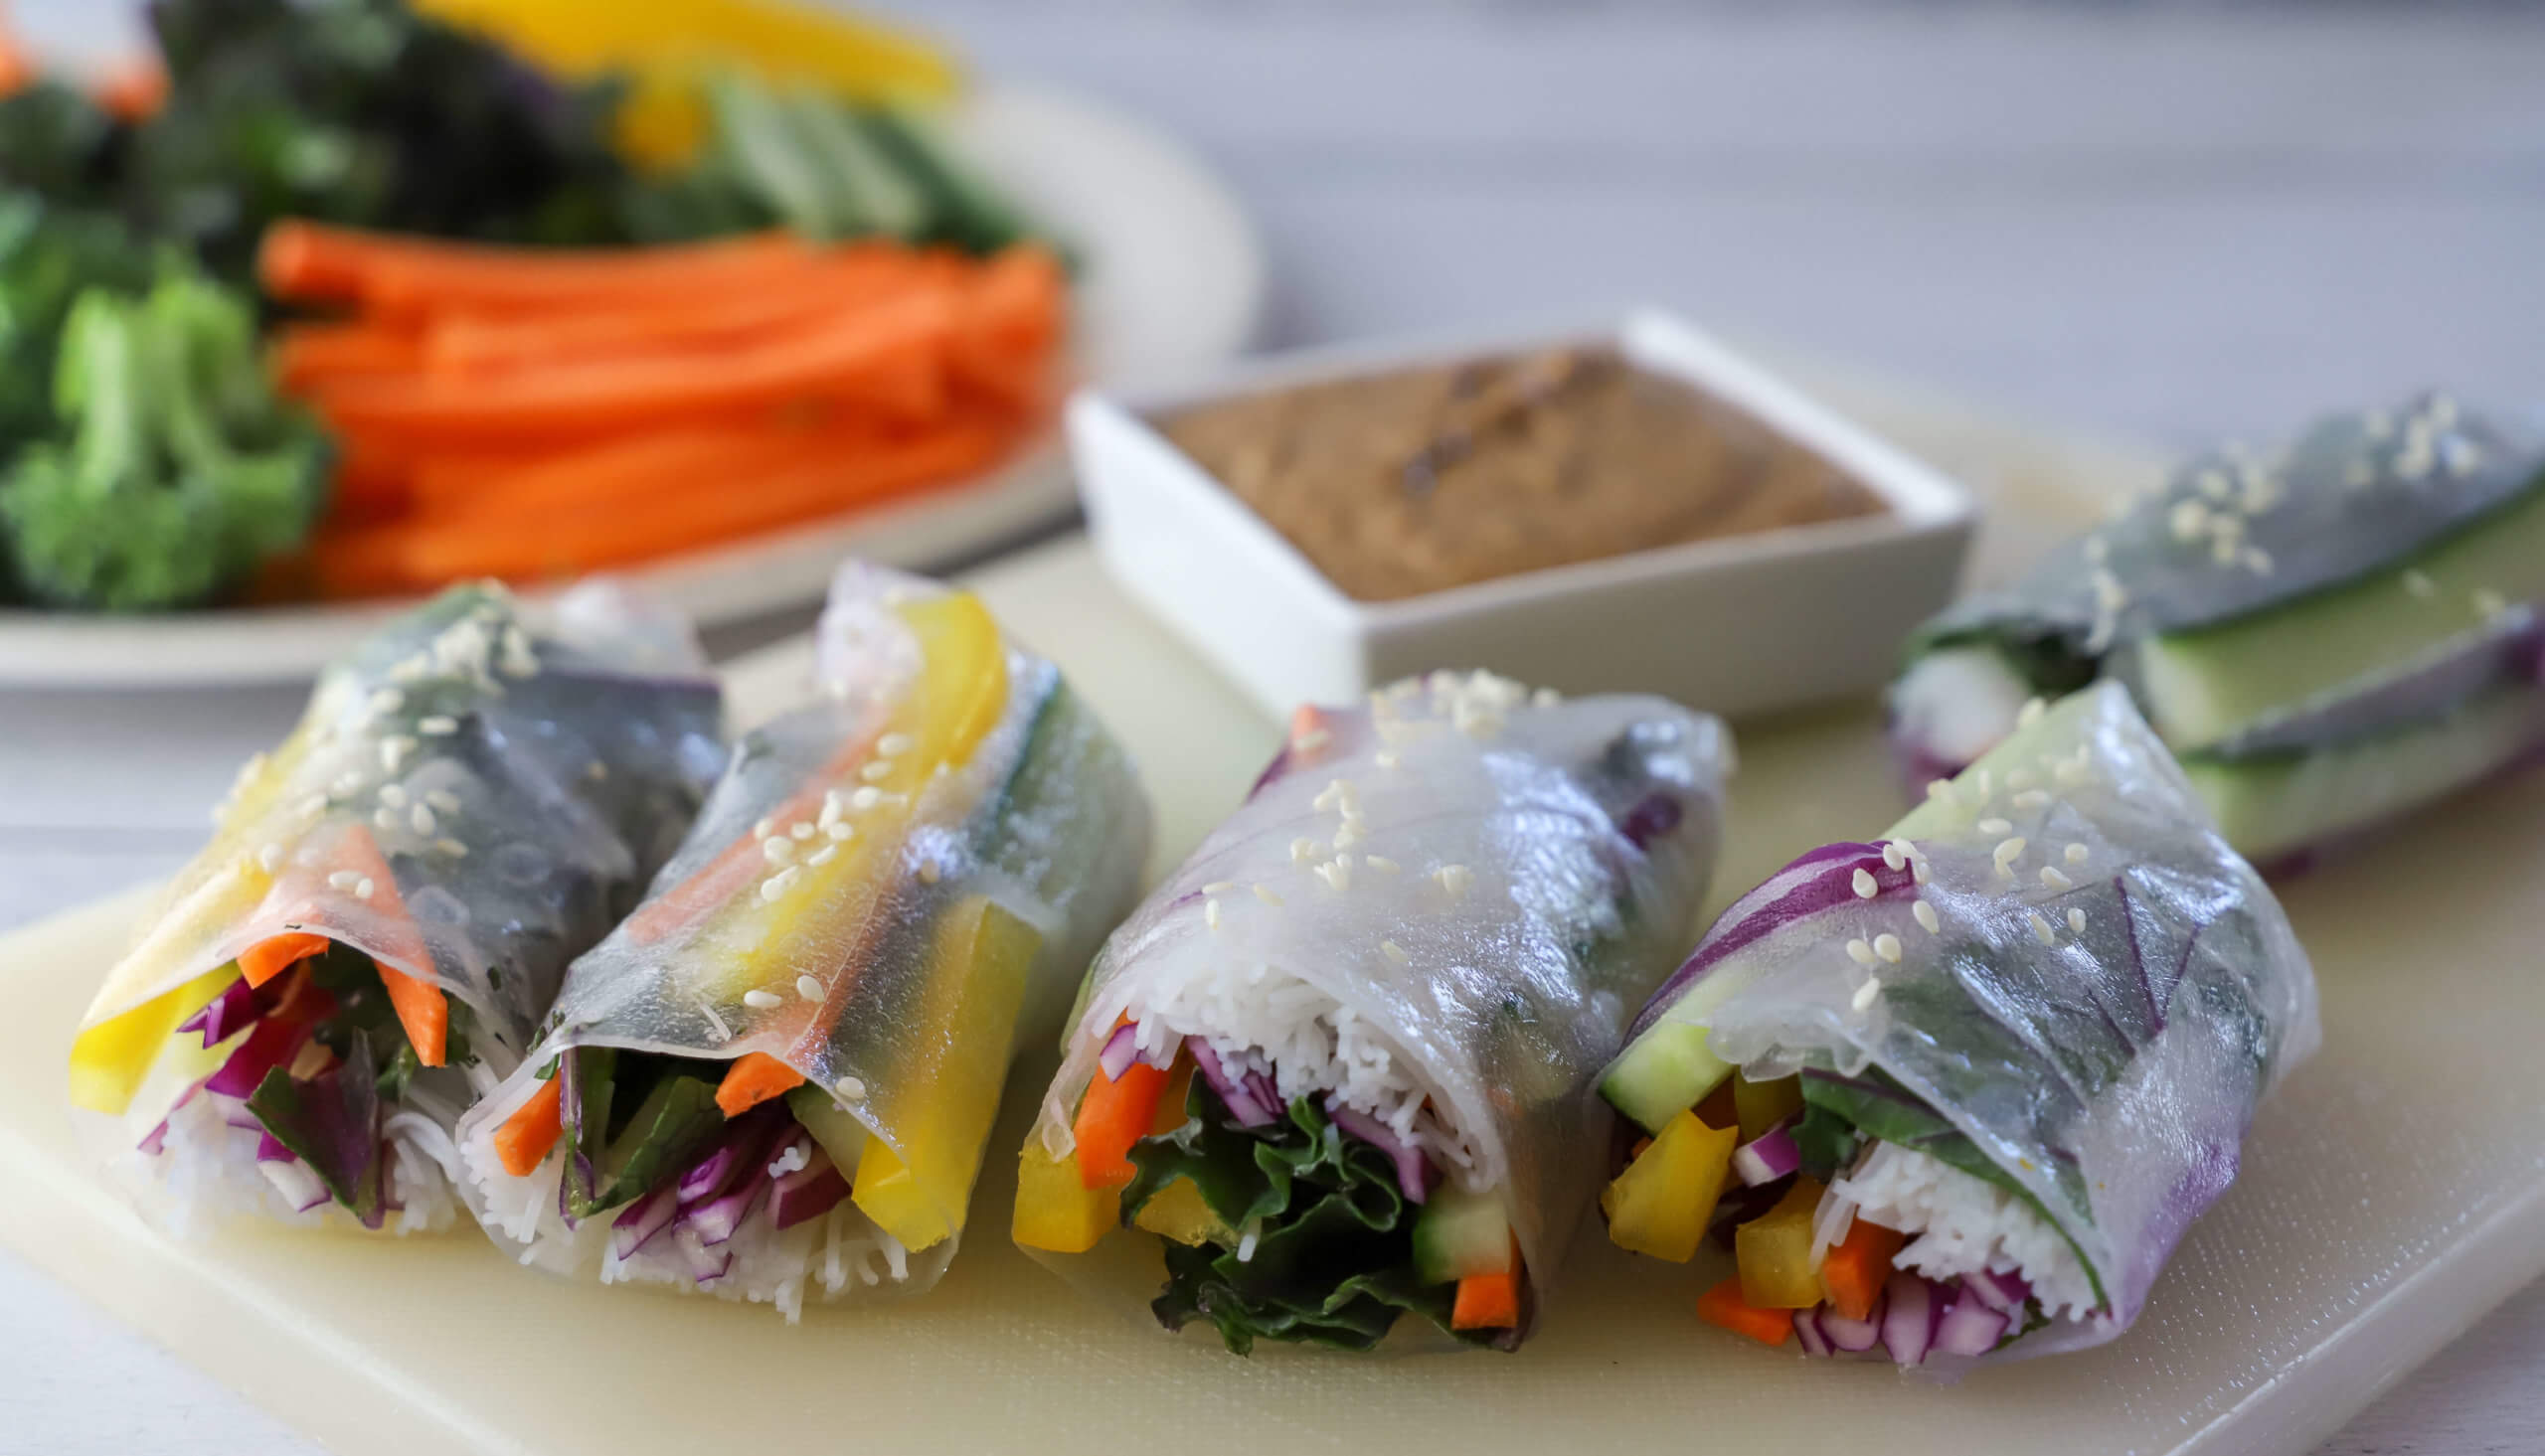 Salad Rolls with Walnut Dipping Sauce